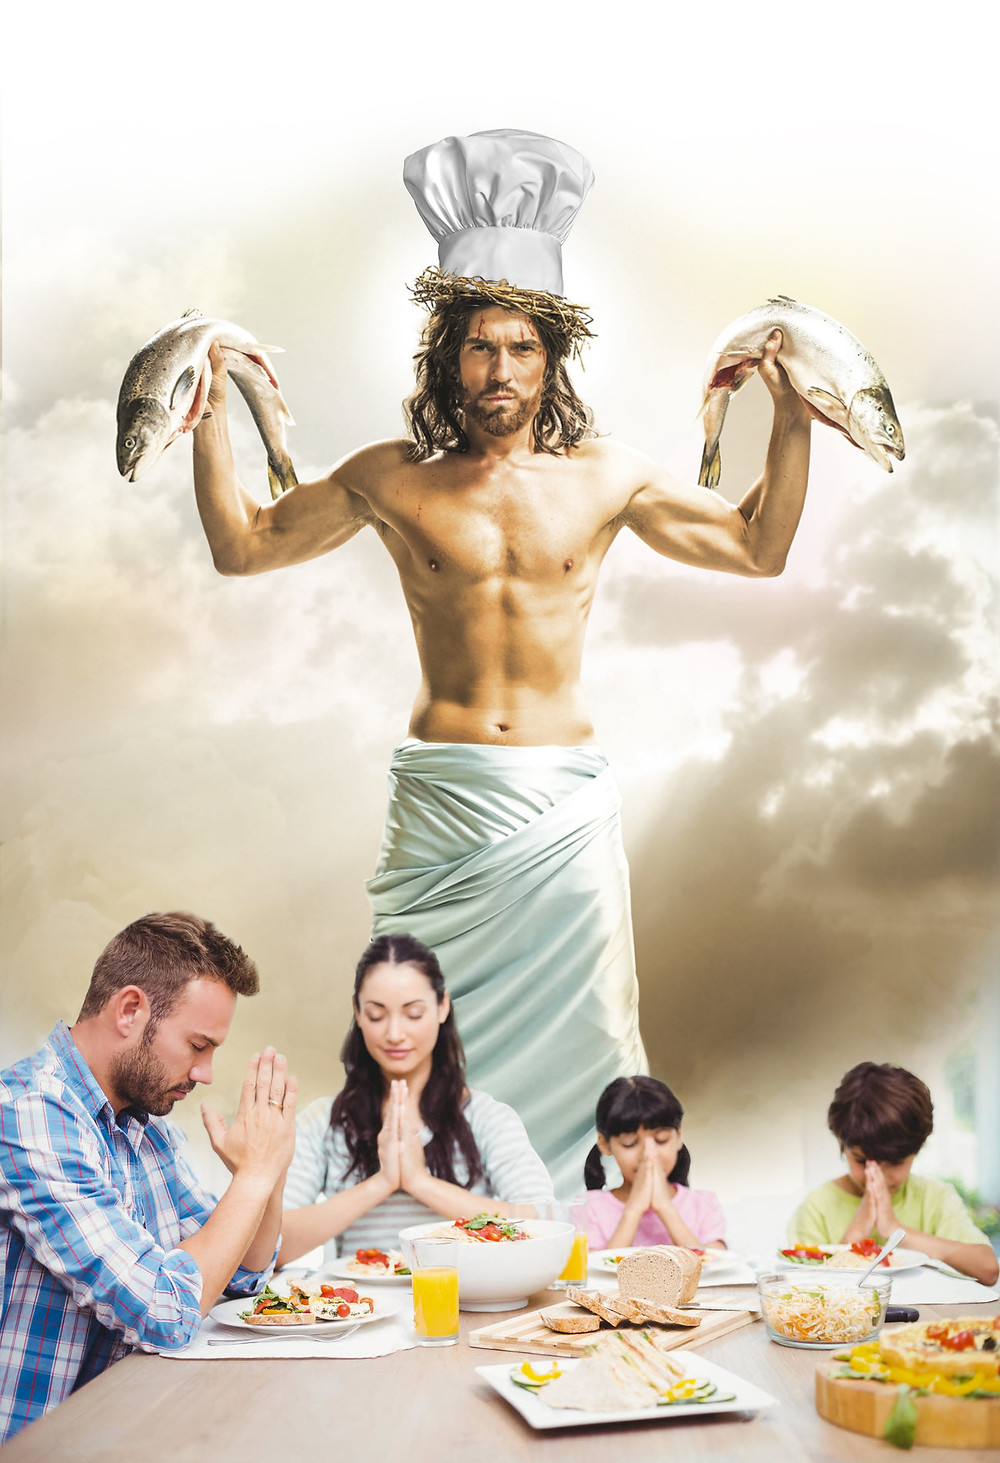 An unbelievably sexy depiction of Jesus holding two dead fish, appearing over a family who has just prayed in their nutrient request.